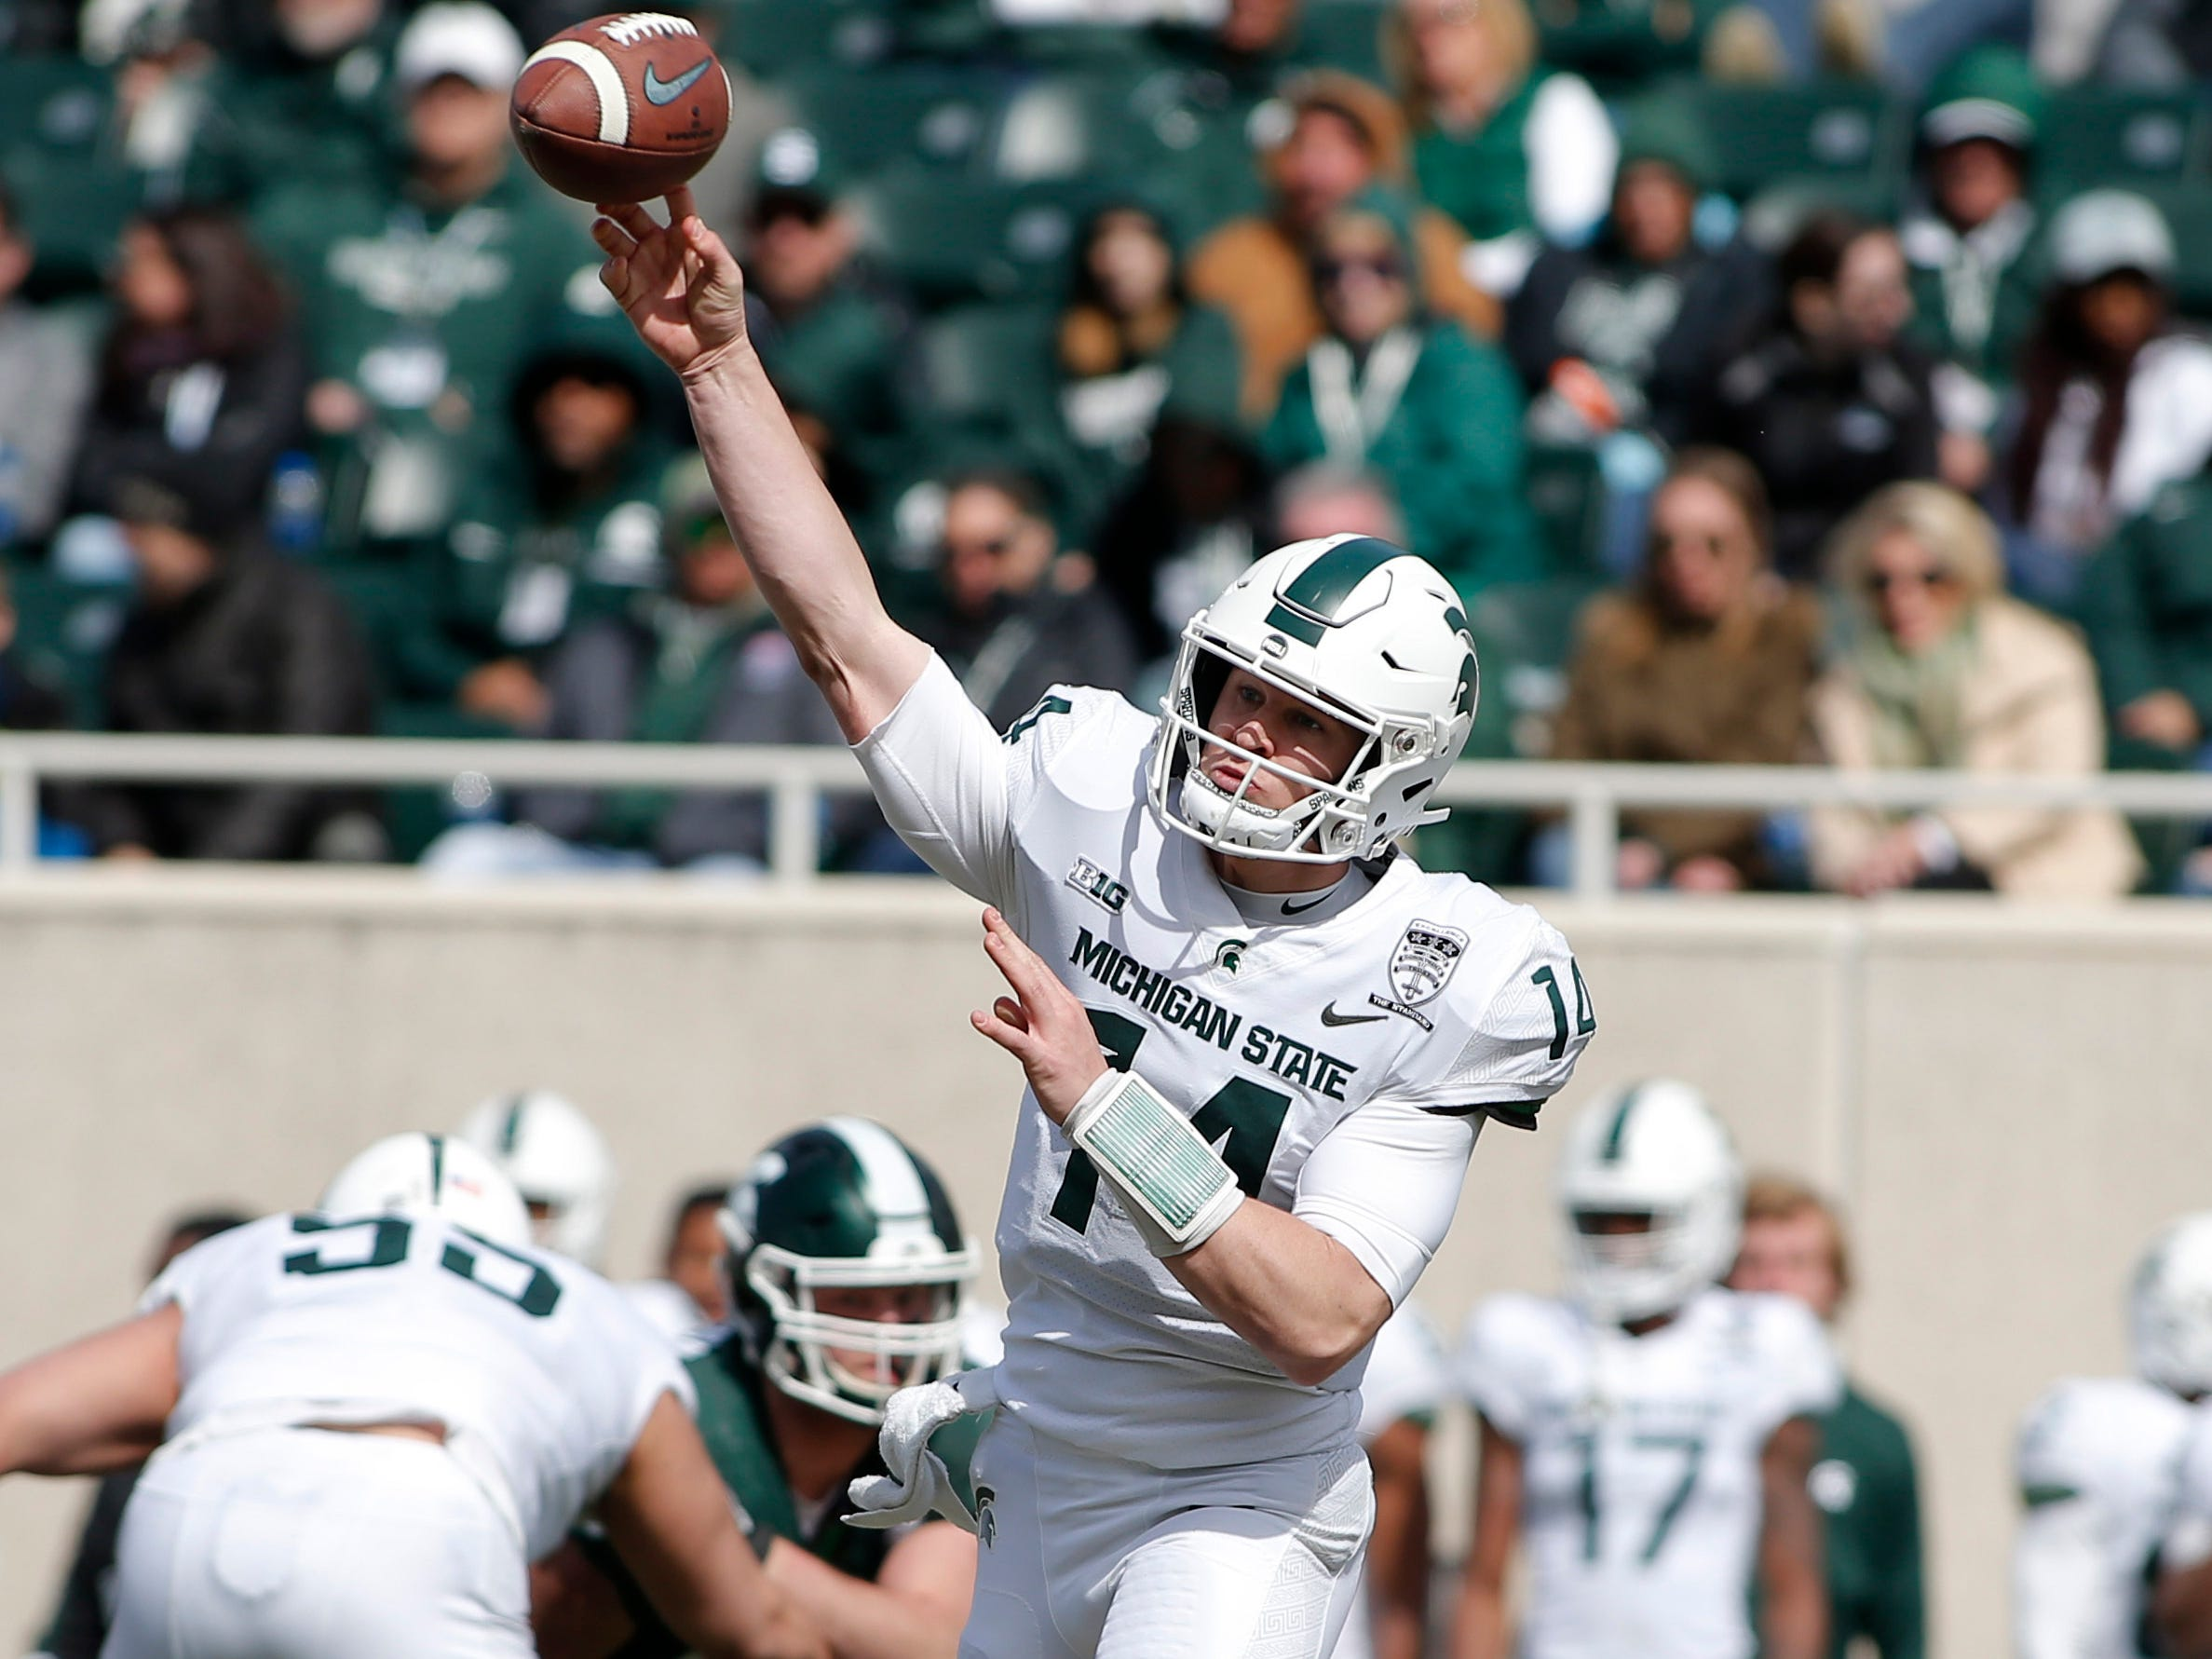 Michigan State quarterback Brian Lewerke throws a pass during a spring scrimmage game, Saturday, April 13, 2019, in East Lansing.